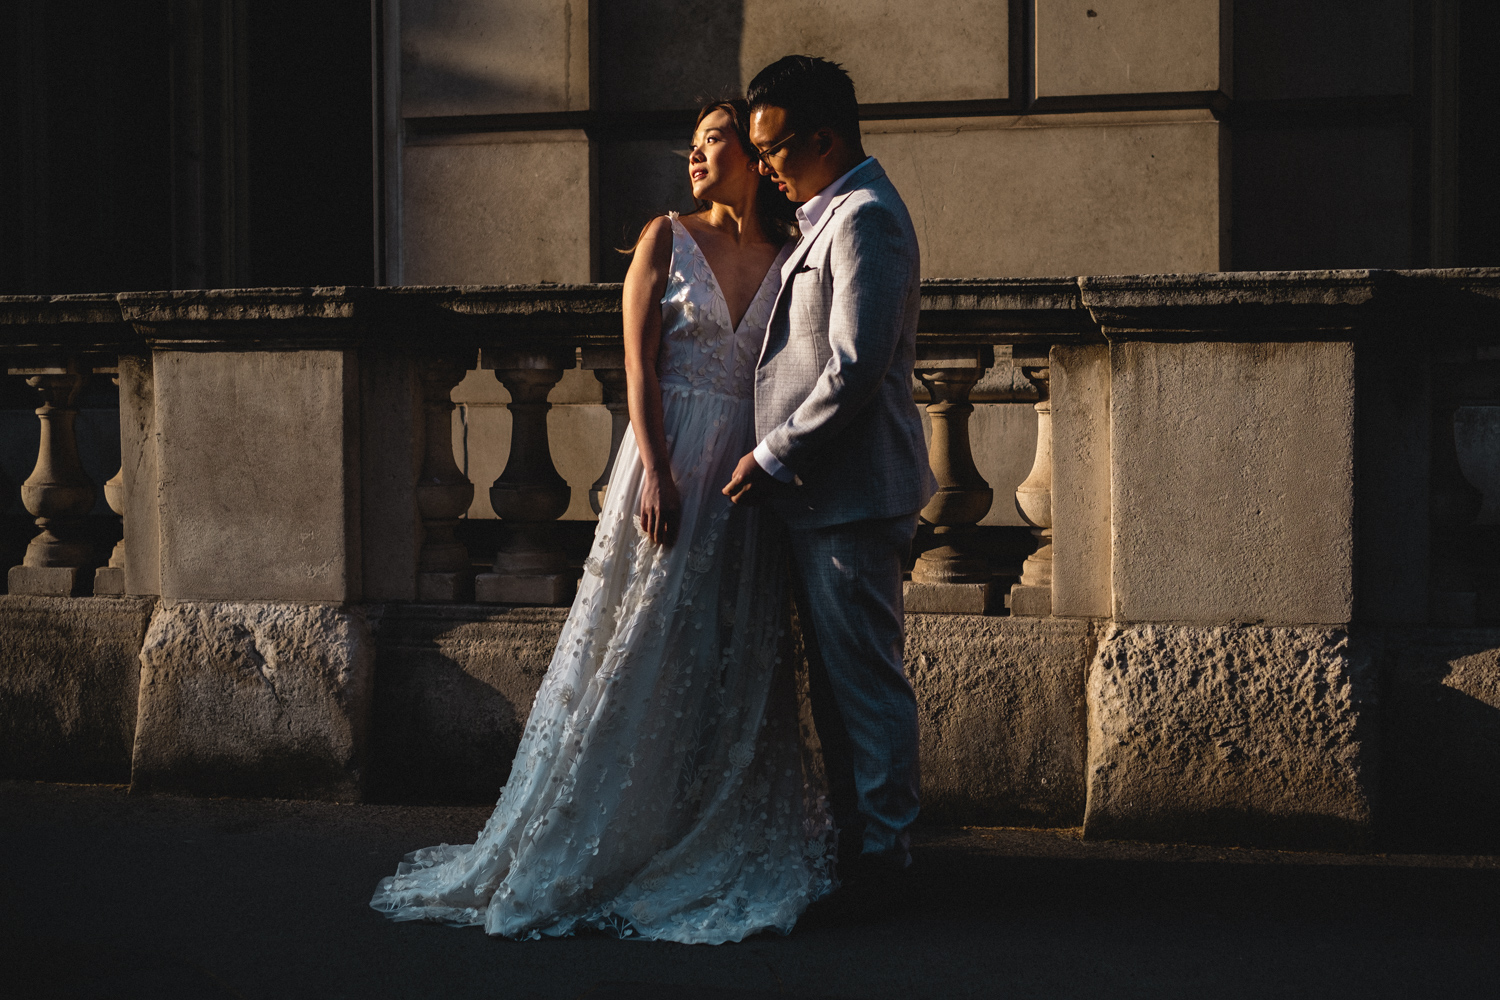 London pre-wedding photos - Horse Guards Avenue